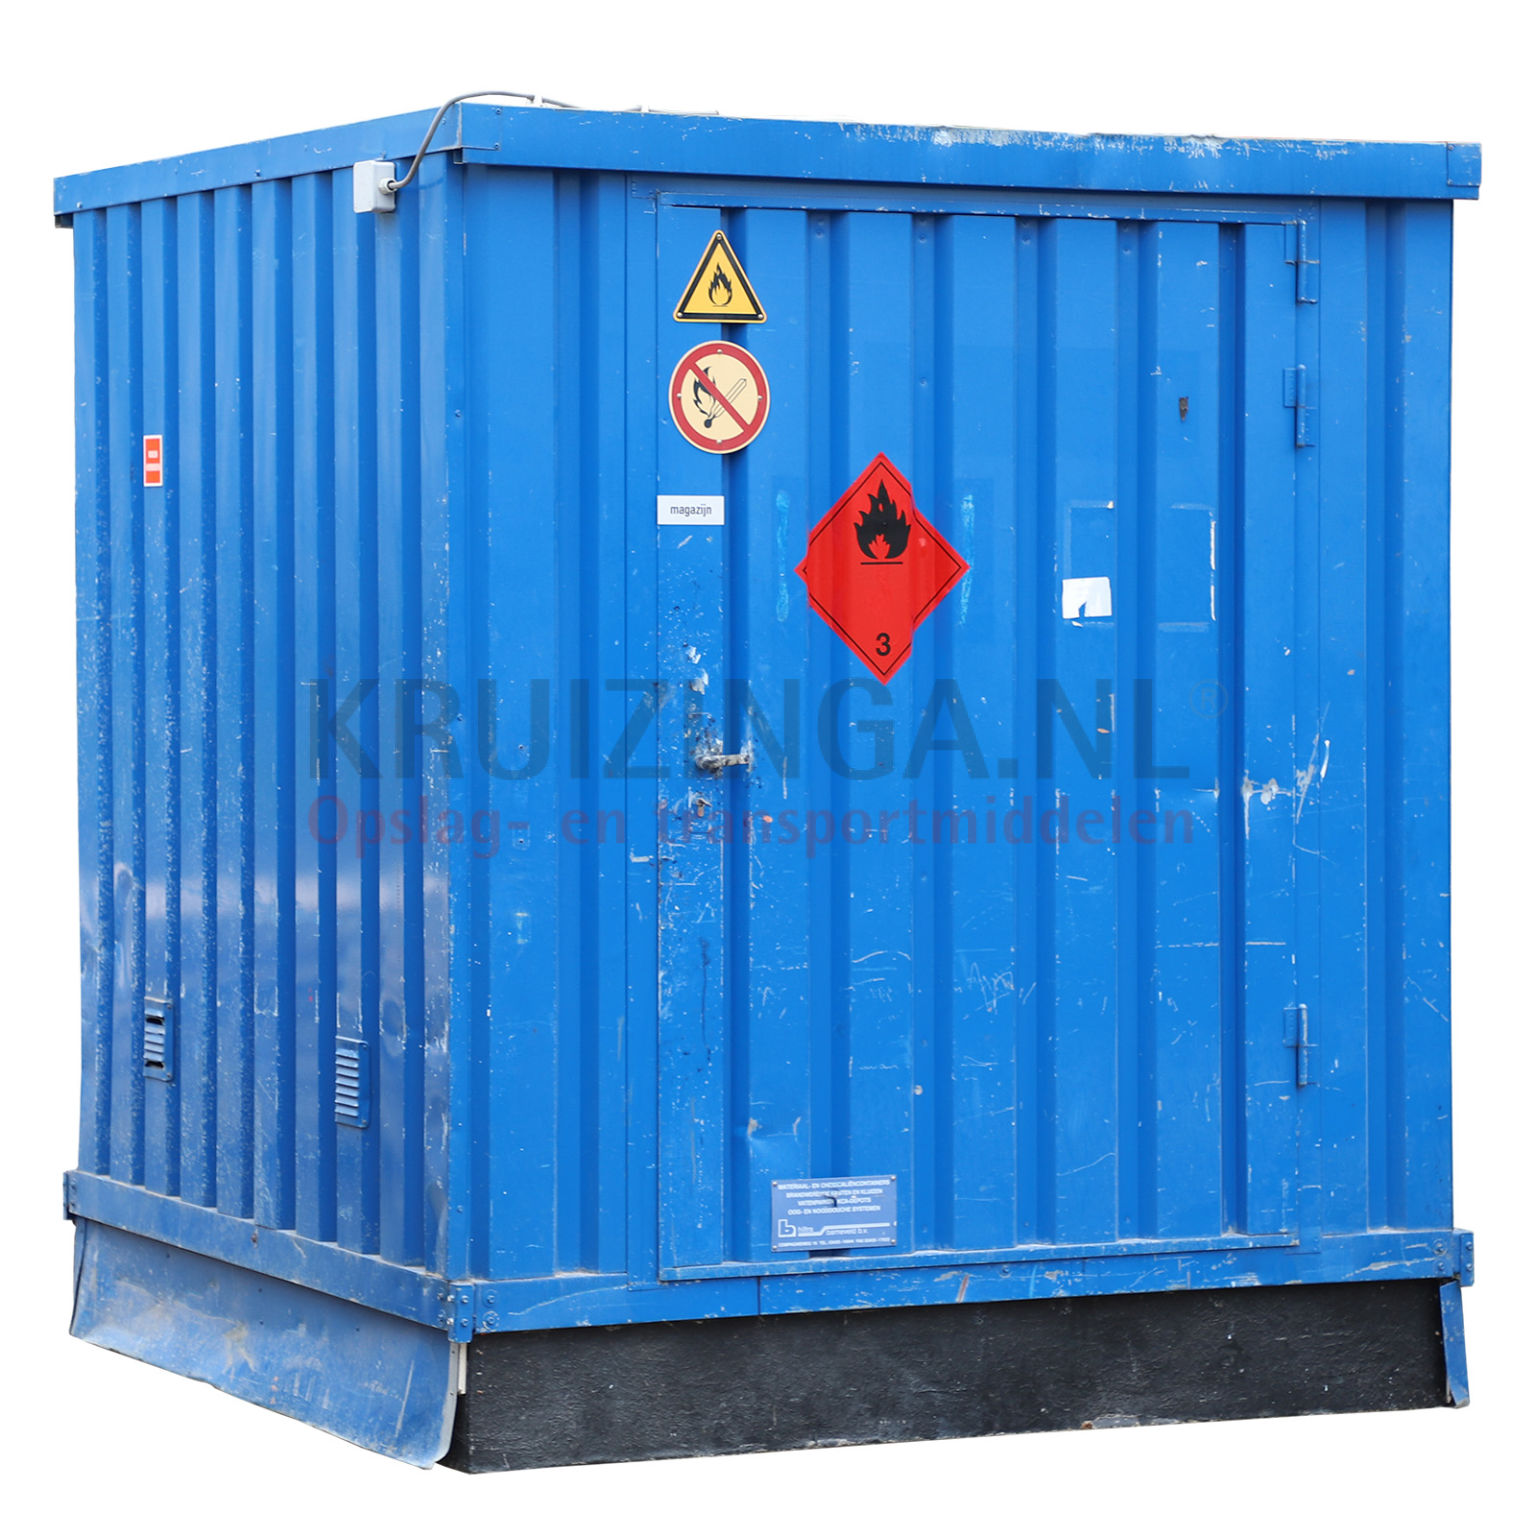 container chemo container ohne einsteckkufen gebraucht. Black Bedroom Furniture Sets. Home Design Ideas